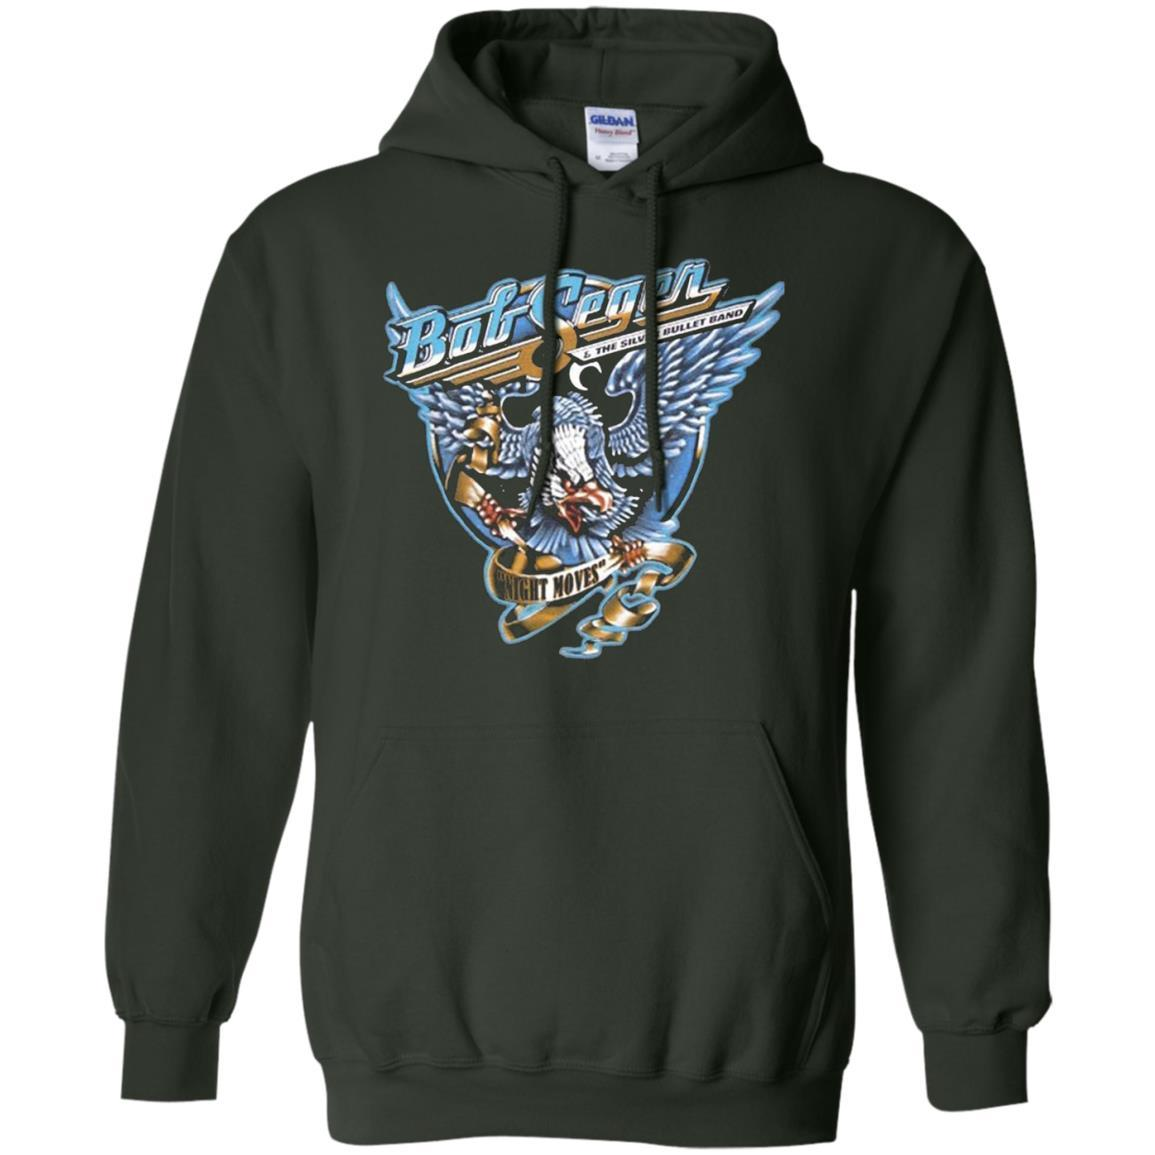 BOB SEGER NIGHT MOVES Classic Rock Music Vintage - Pullover Hoodie Forest Green / 5XL